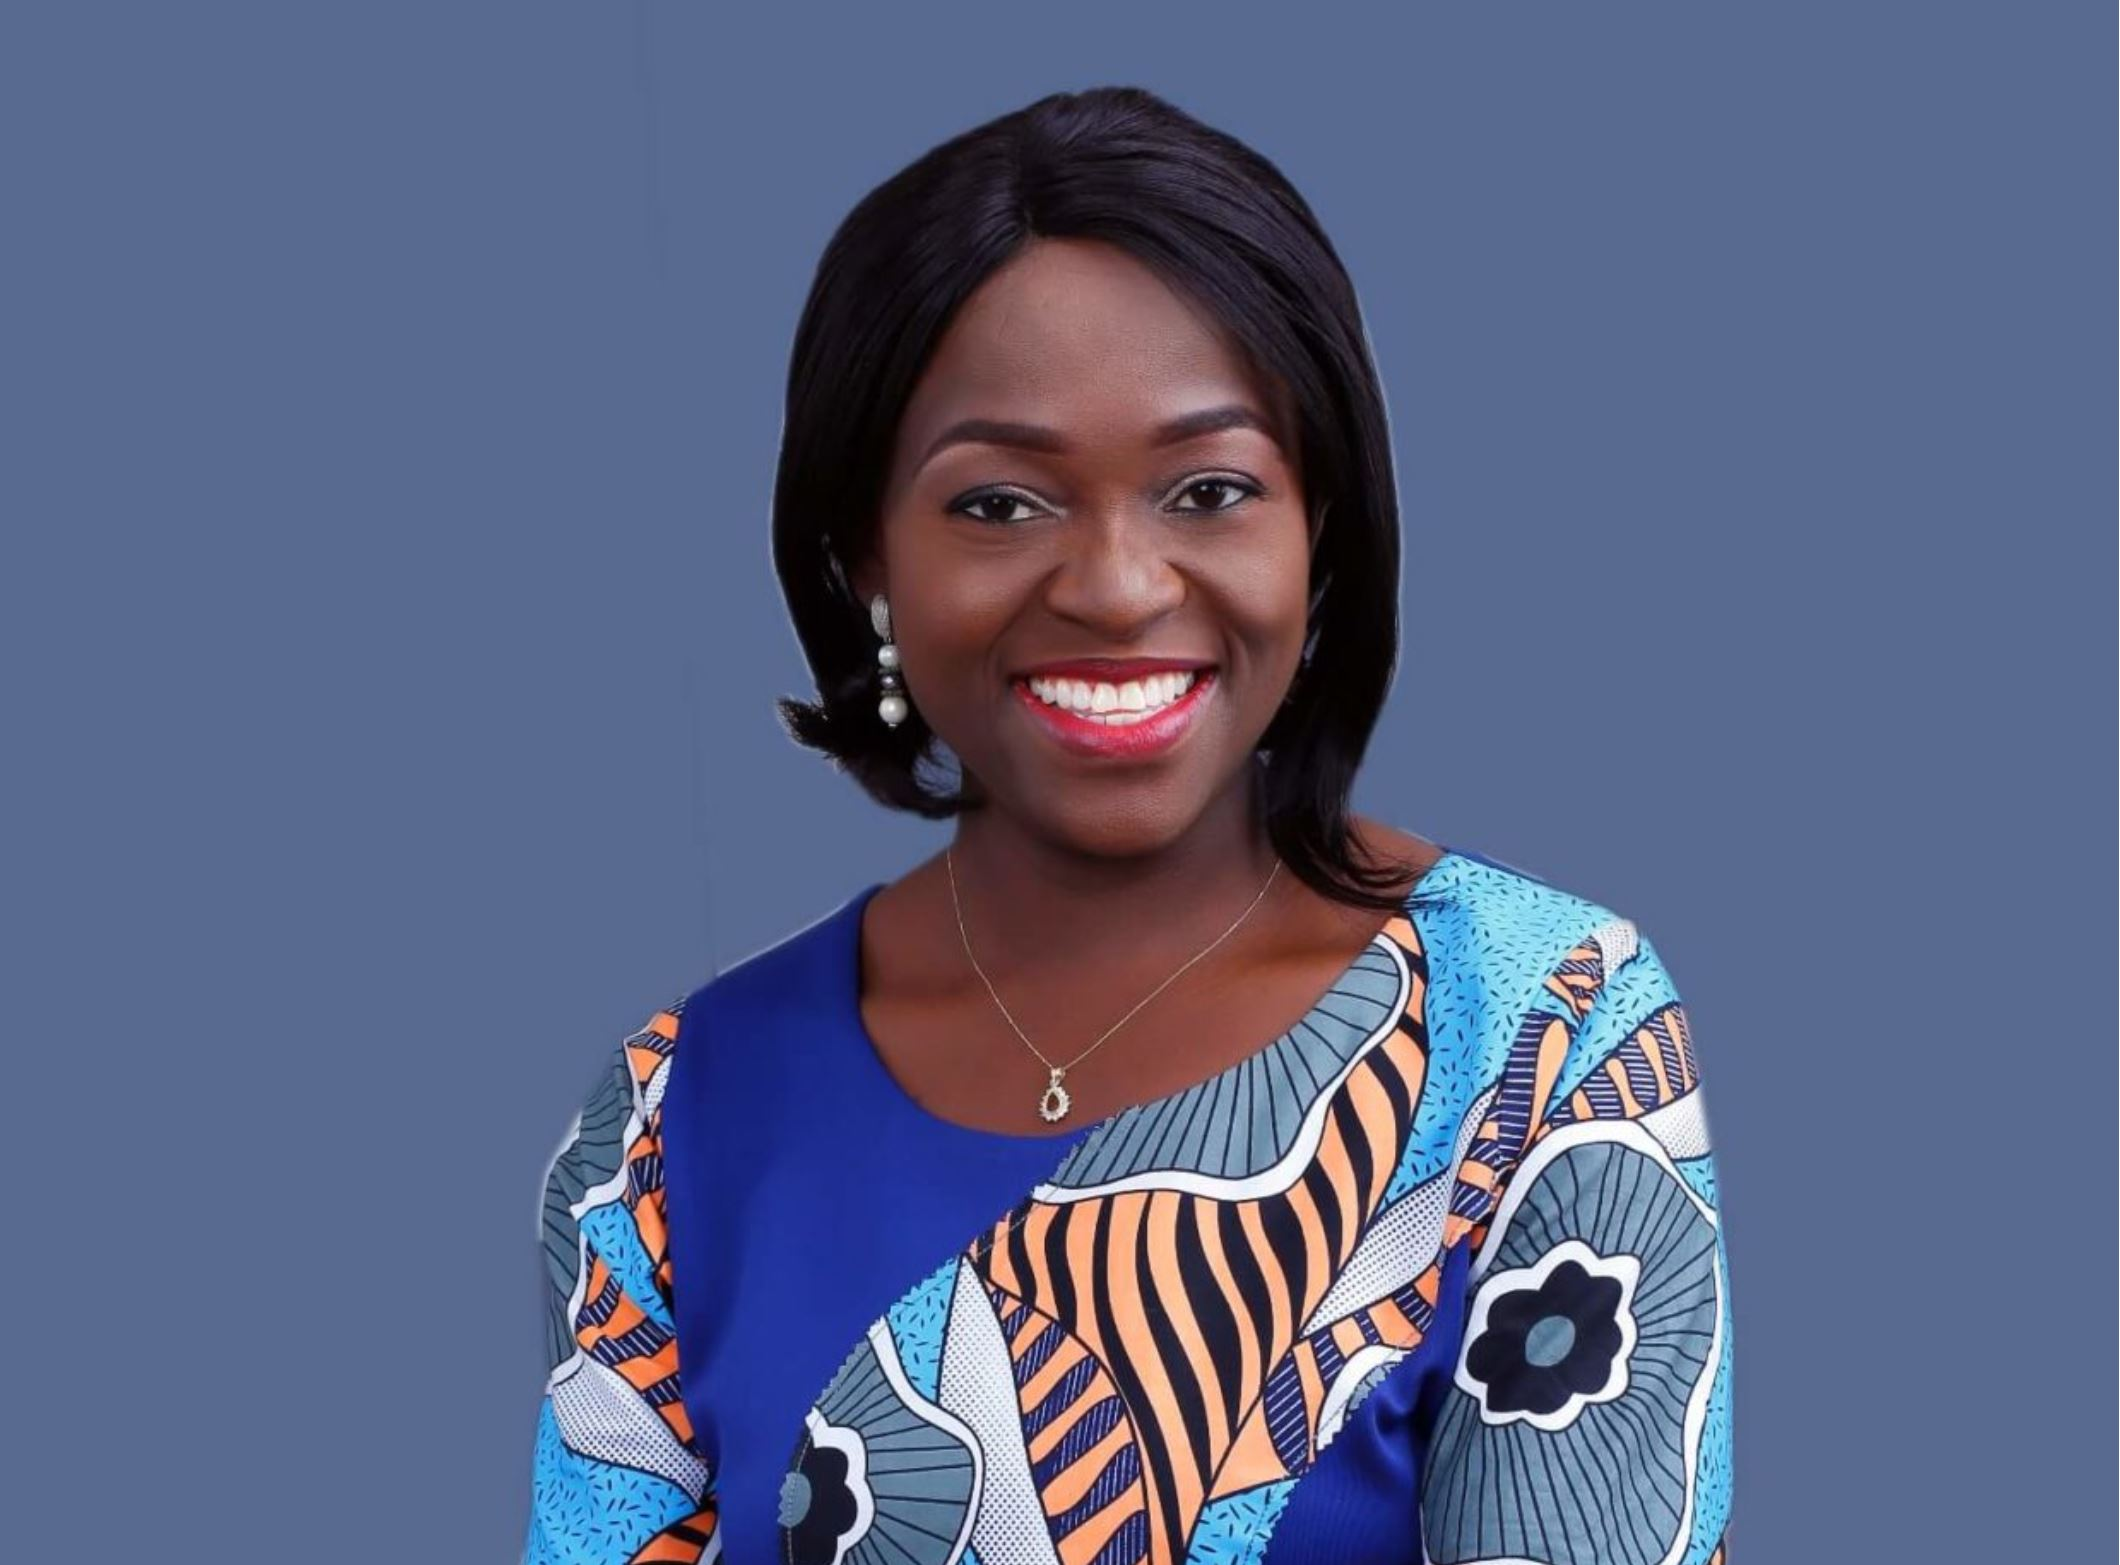 Eunice Okay ng - Another presidential candidate withdraws from race, declares support for Atiku